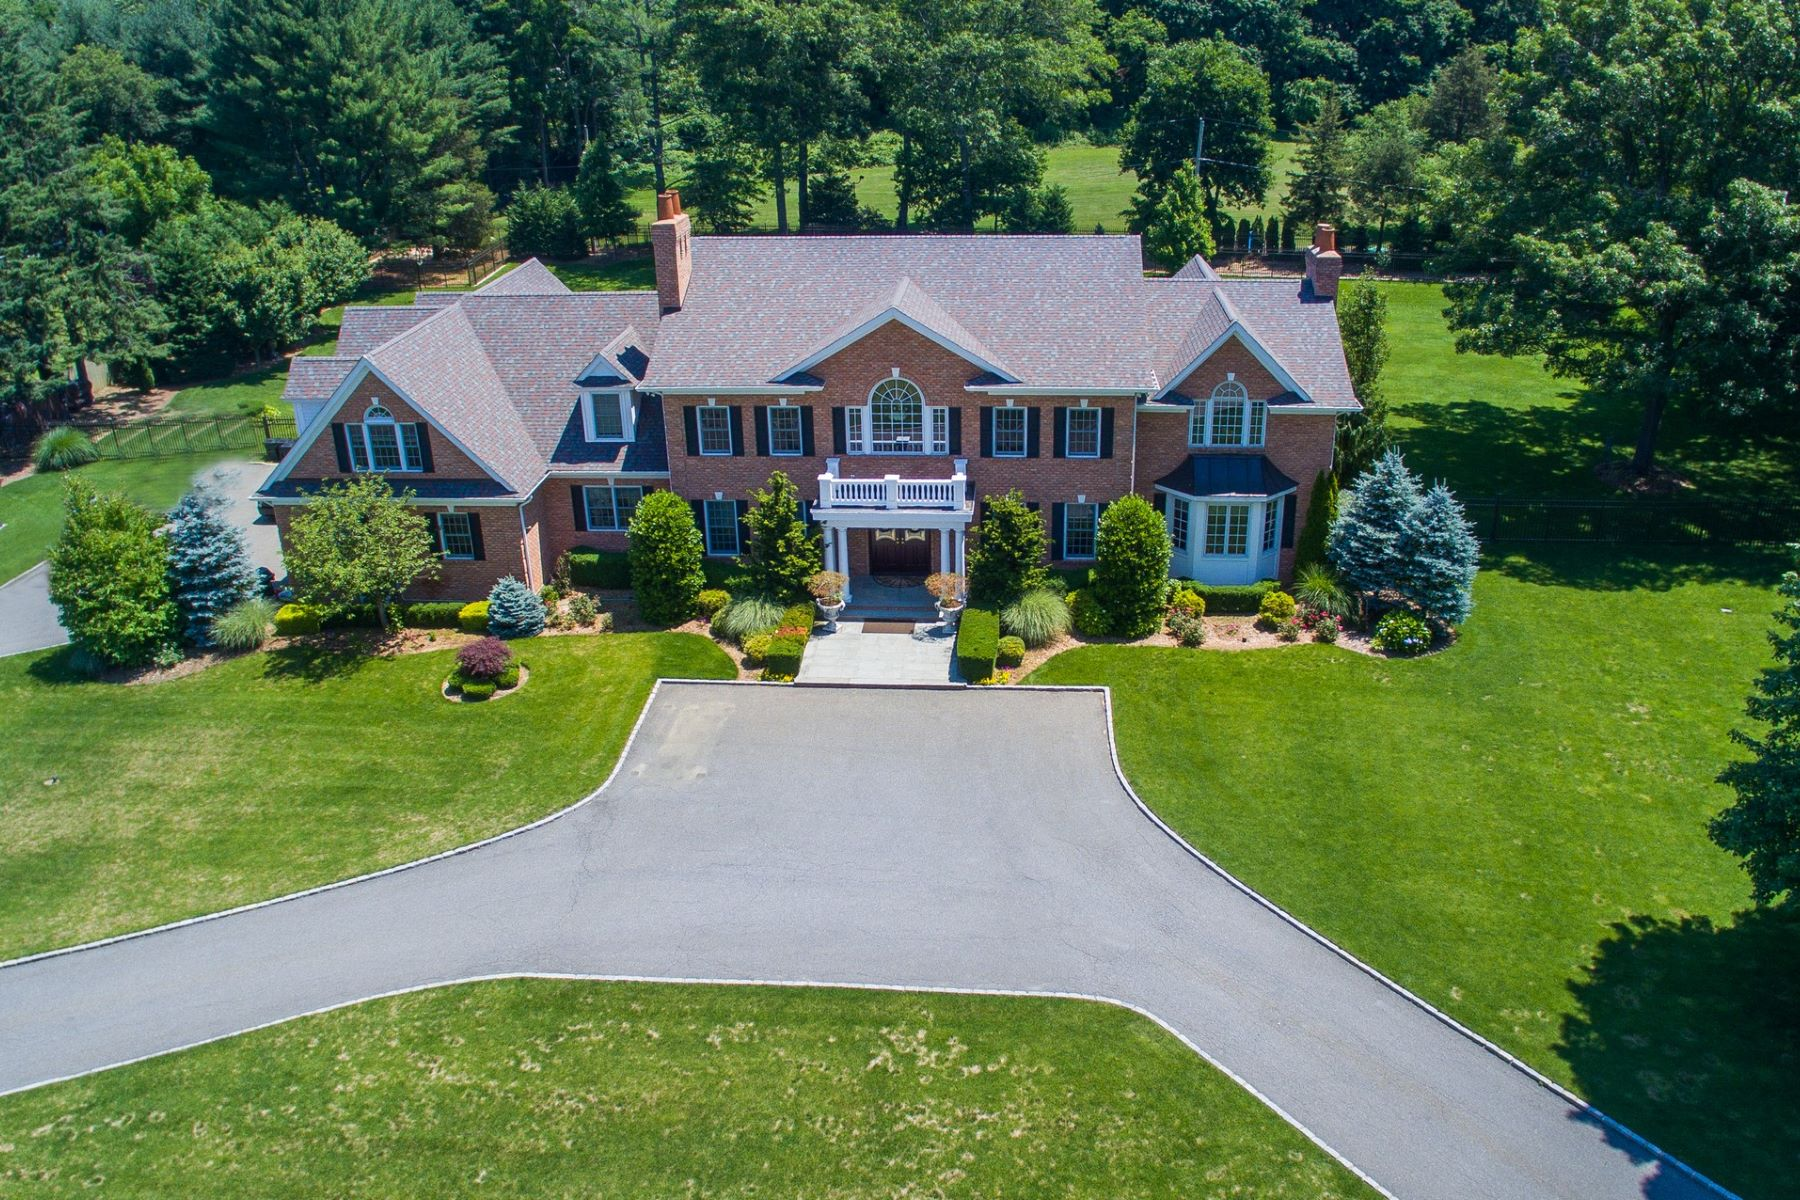 Single Family Home for Sale at Colonial 1934 Midlane Muttontown, New York, 11791 United States